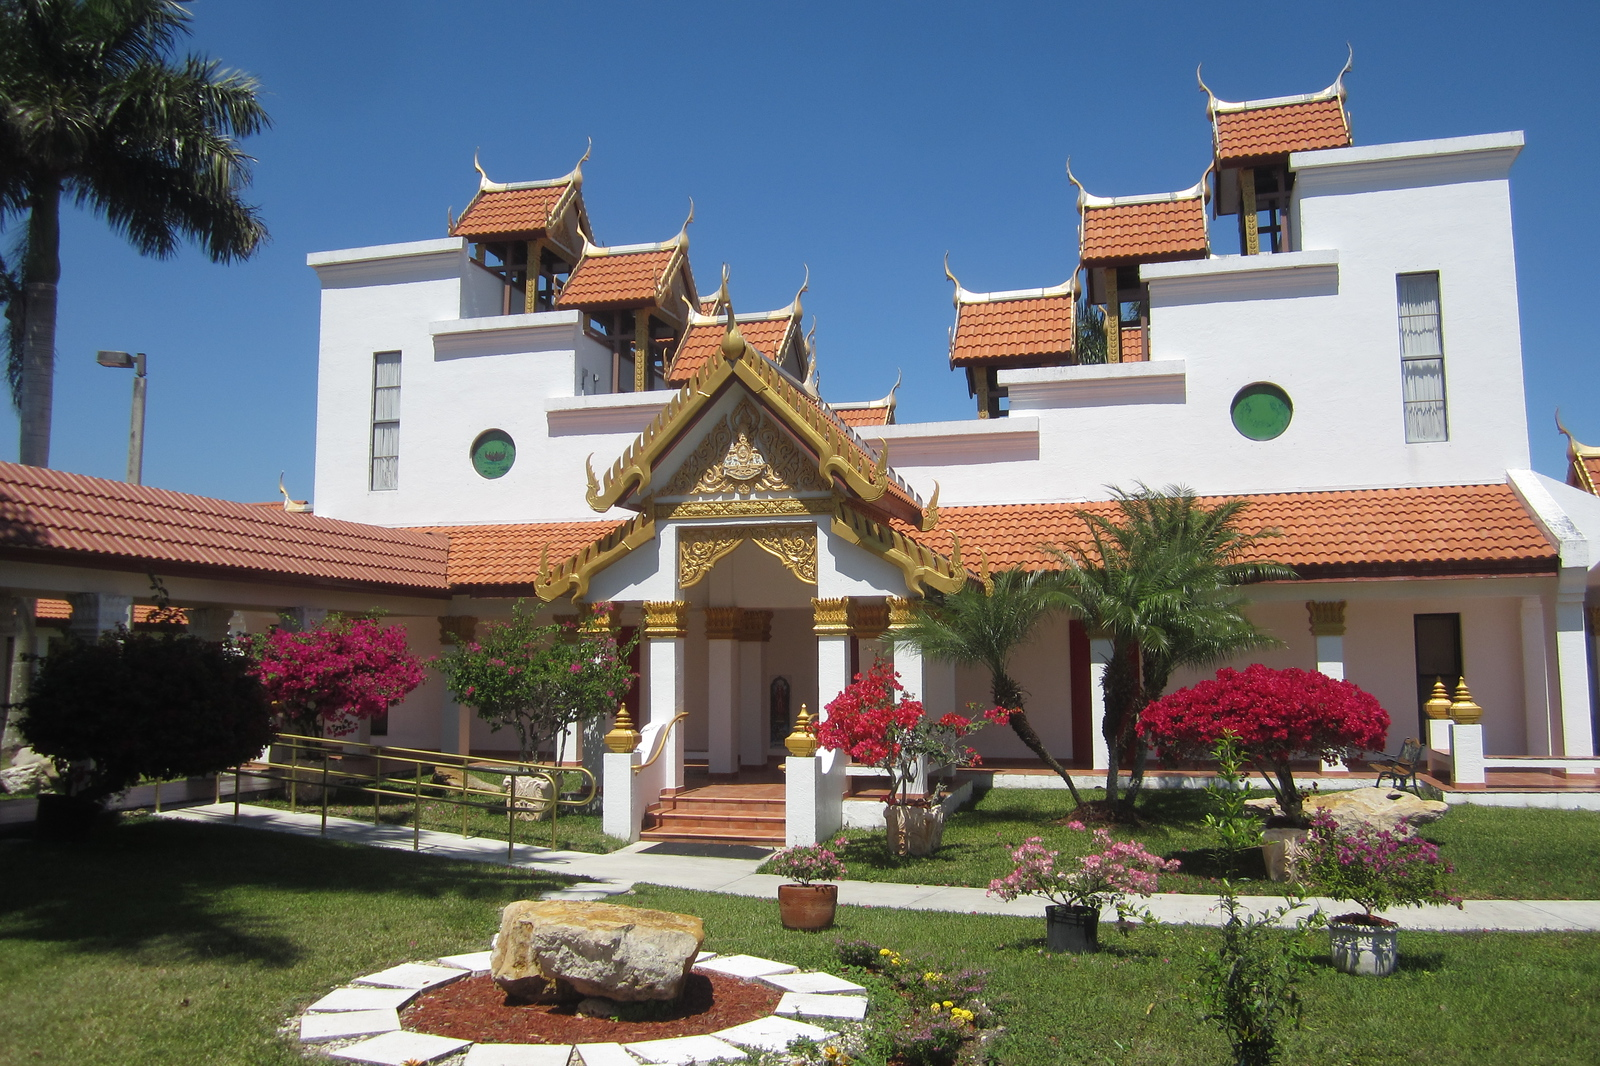 wat buddharangsi buddhist temple essay Florida international university department of religious studies rel 3308 studies in world religions spring 2012 _____ instructor: mr daniel alvarez office hours: tr, 1:00-2:00 pm dm 302 or by appointment.